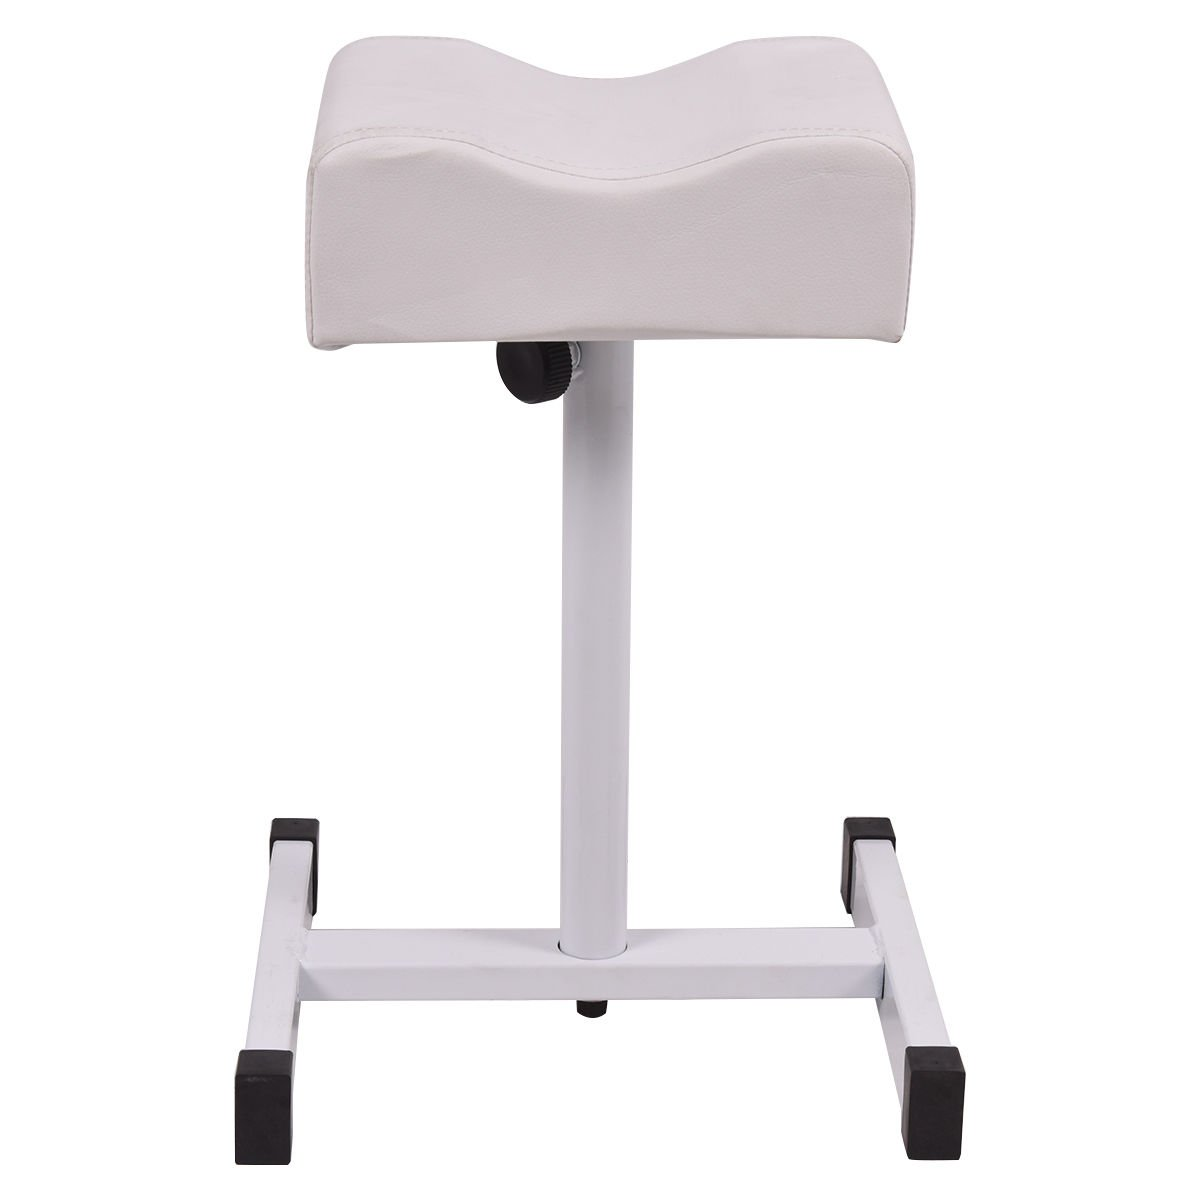 Simply Silver - Adjustable Pedicure - White Adjustable Pedicure Manicure Technician Nail Footrest Salon Spa Equipment by Simply Silver (Image #3)